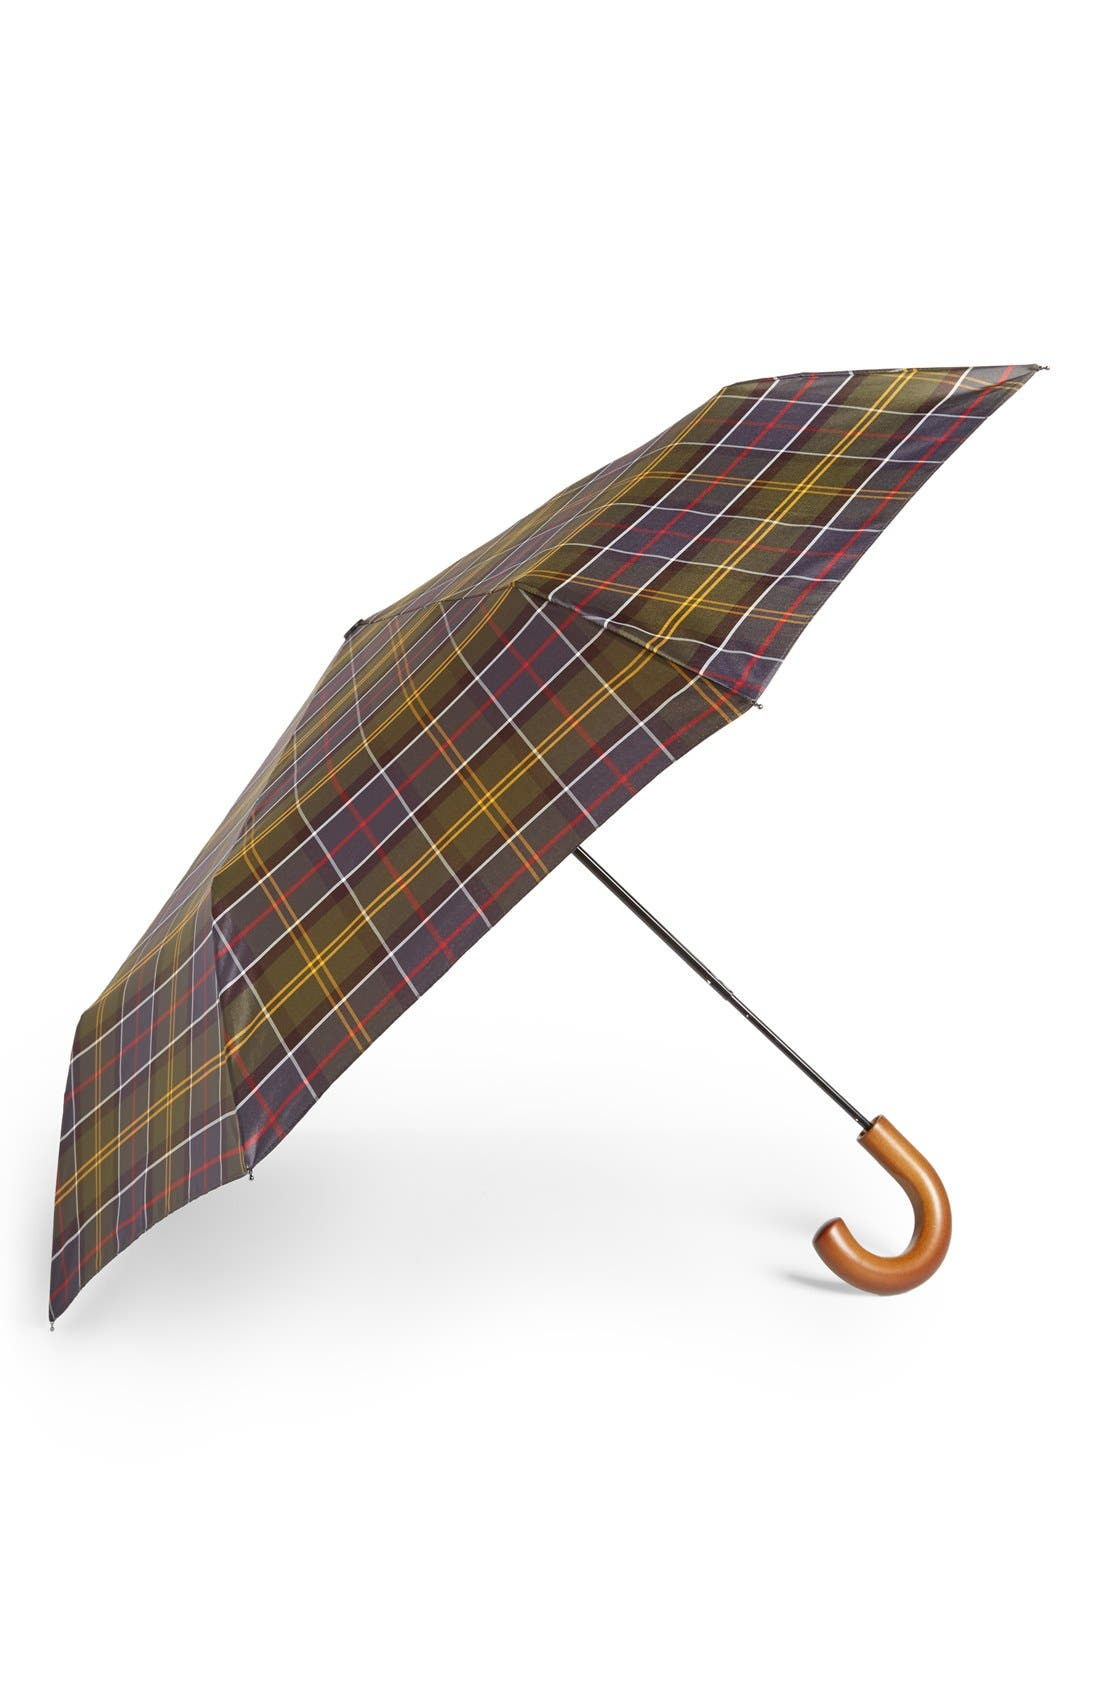 Telescoping Tartan Umbrella,                             Main thumbnail 1, color,                             300